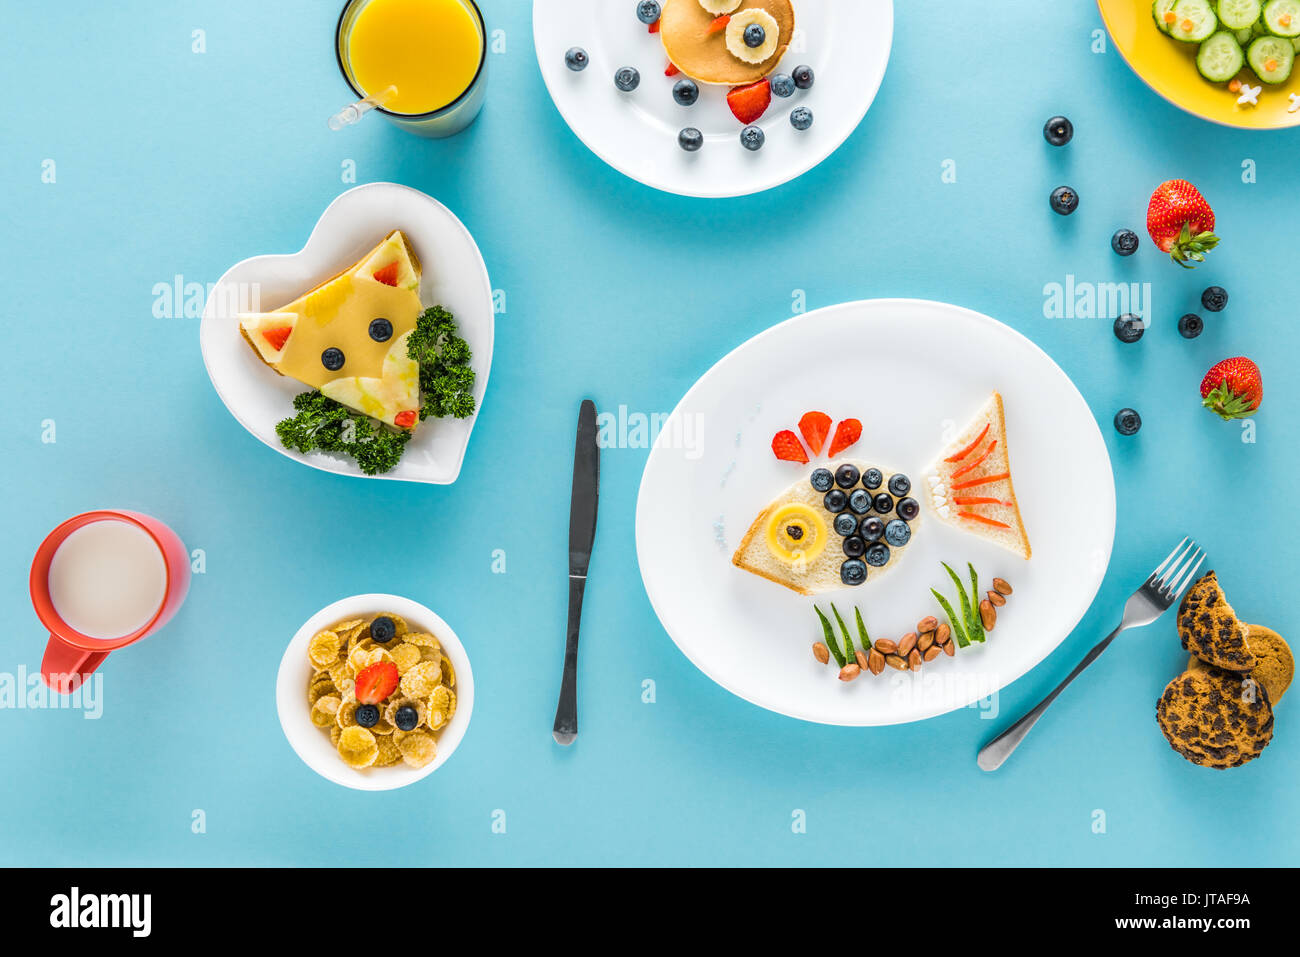 flat lay with creatively styled children's breakfast with juice on colorful tabletop - Stock Image